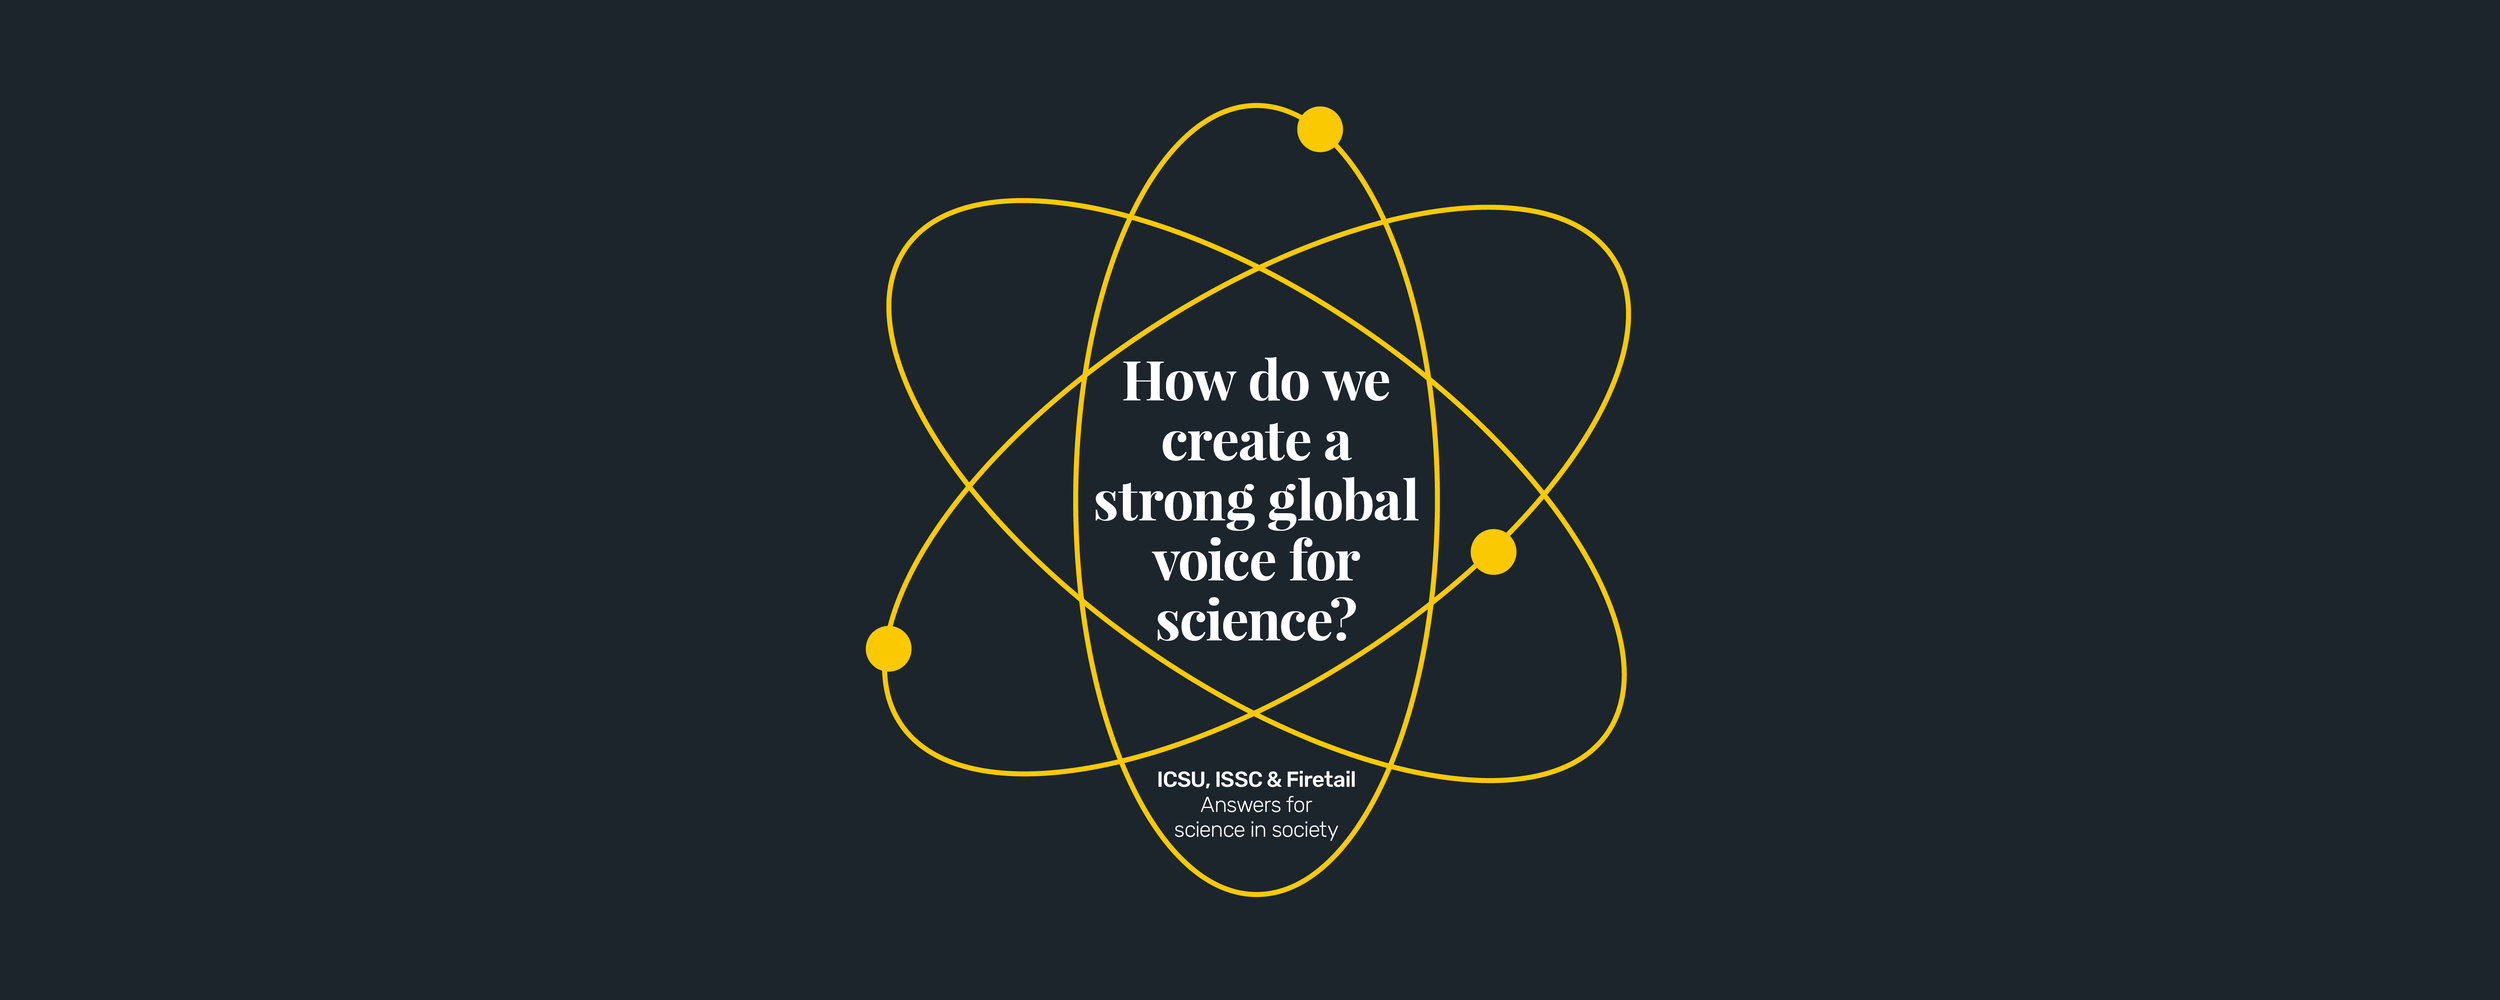 How do we create a strong global voice for science